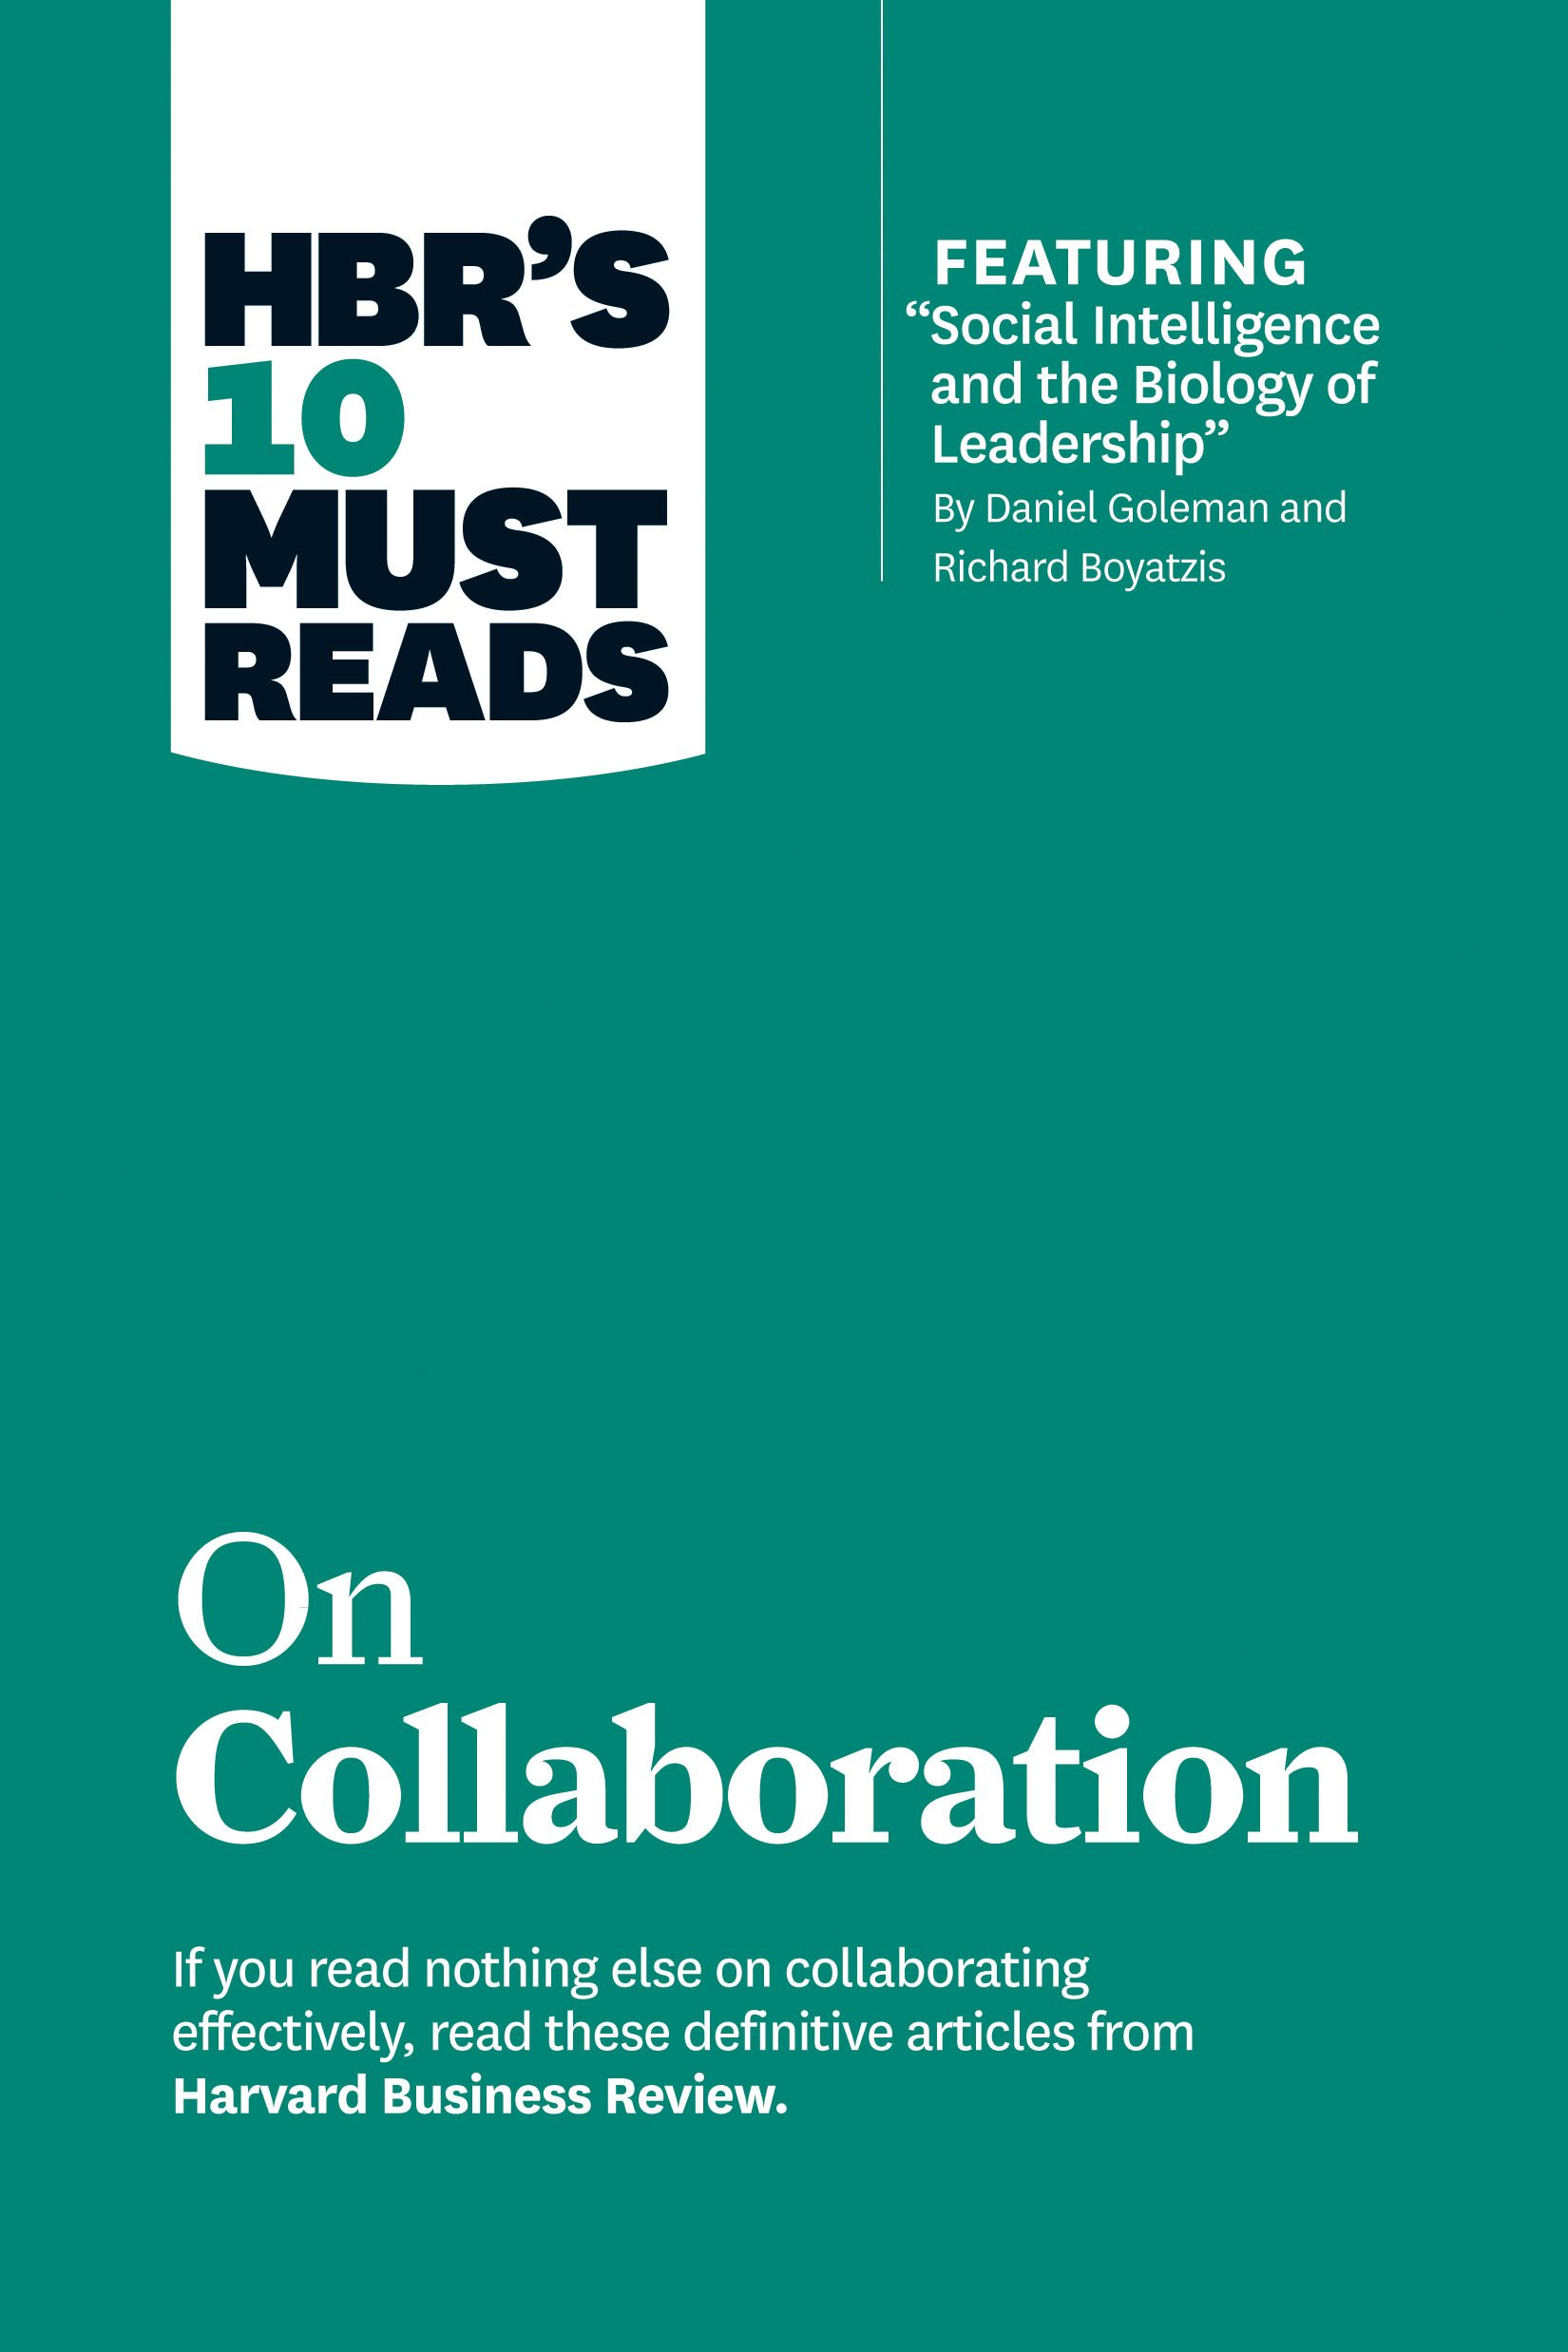 11 Books On Collaboration Teamwork And Management HBR 10 Must Reads On Collaboration